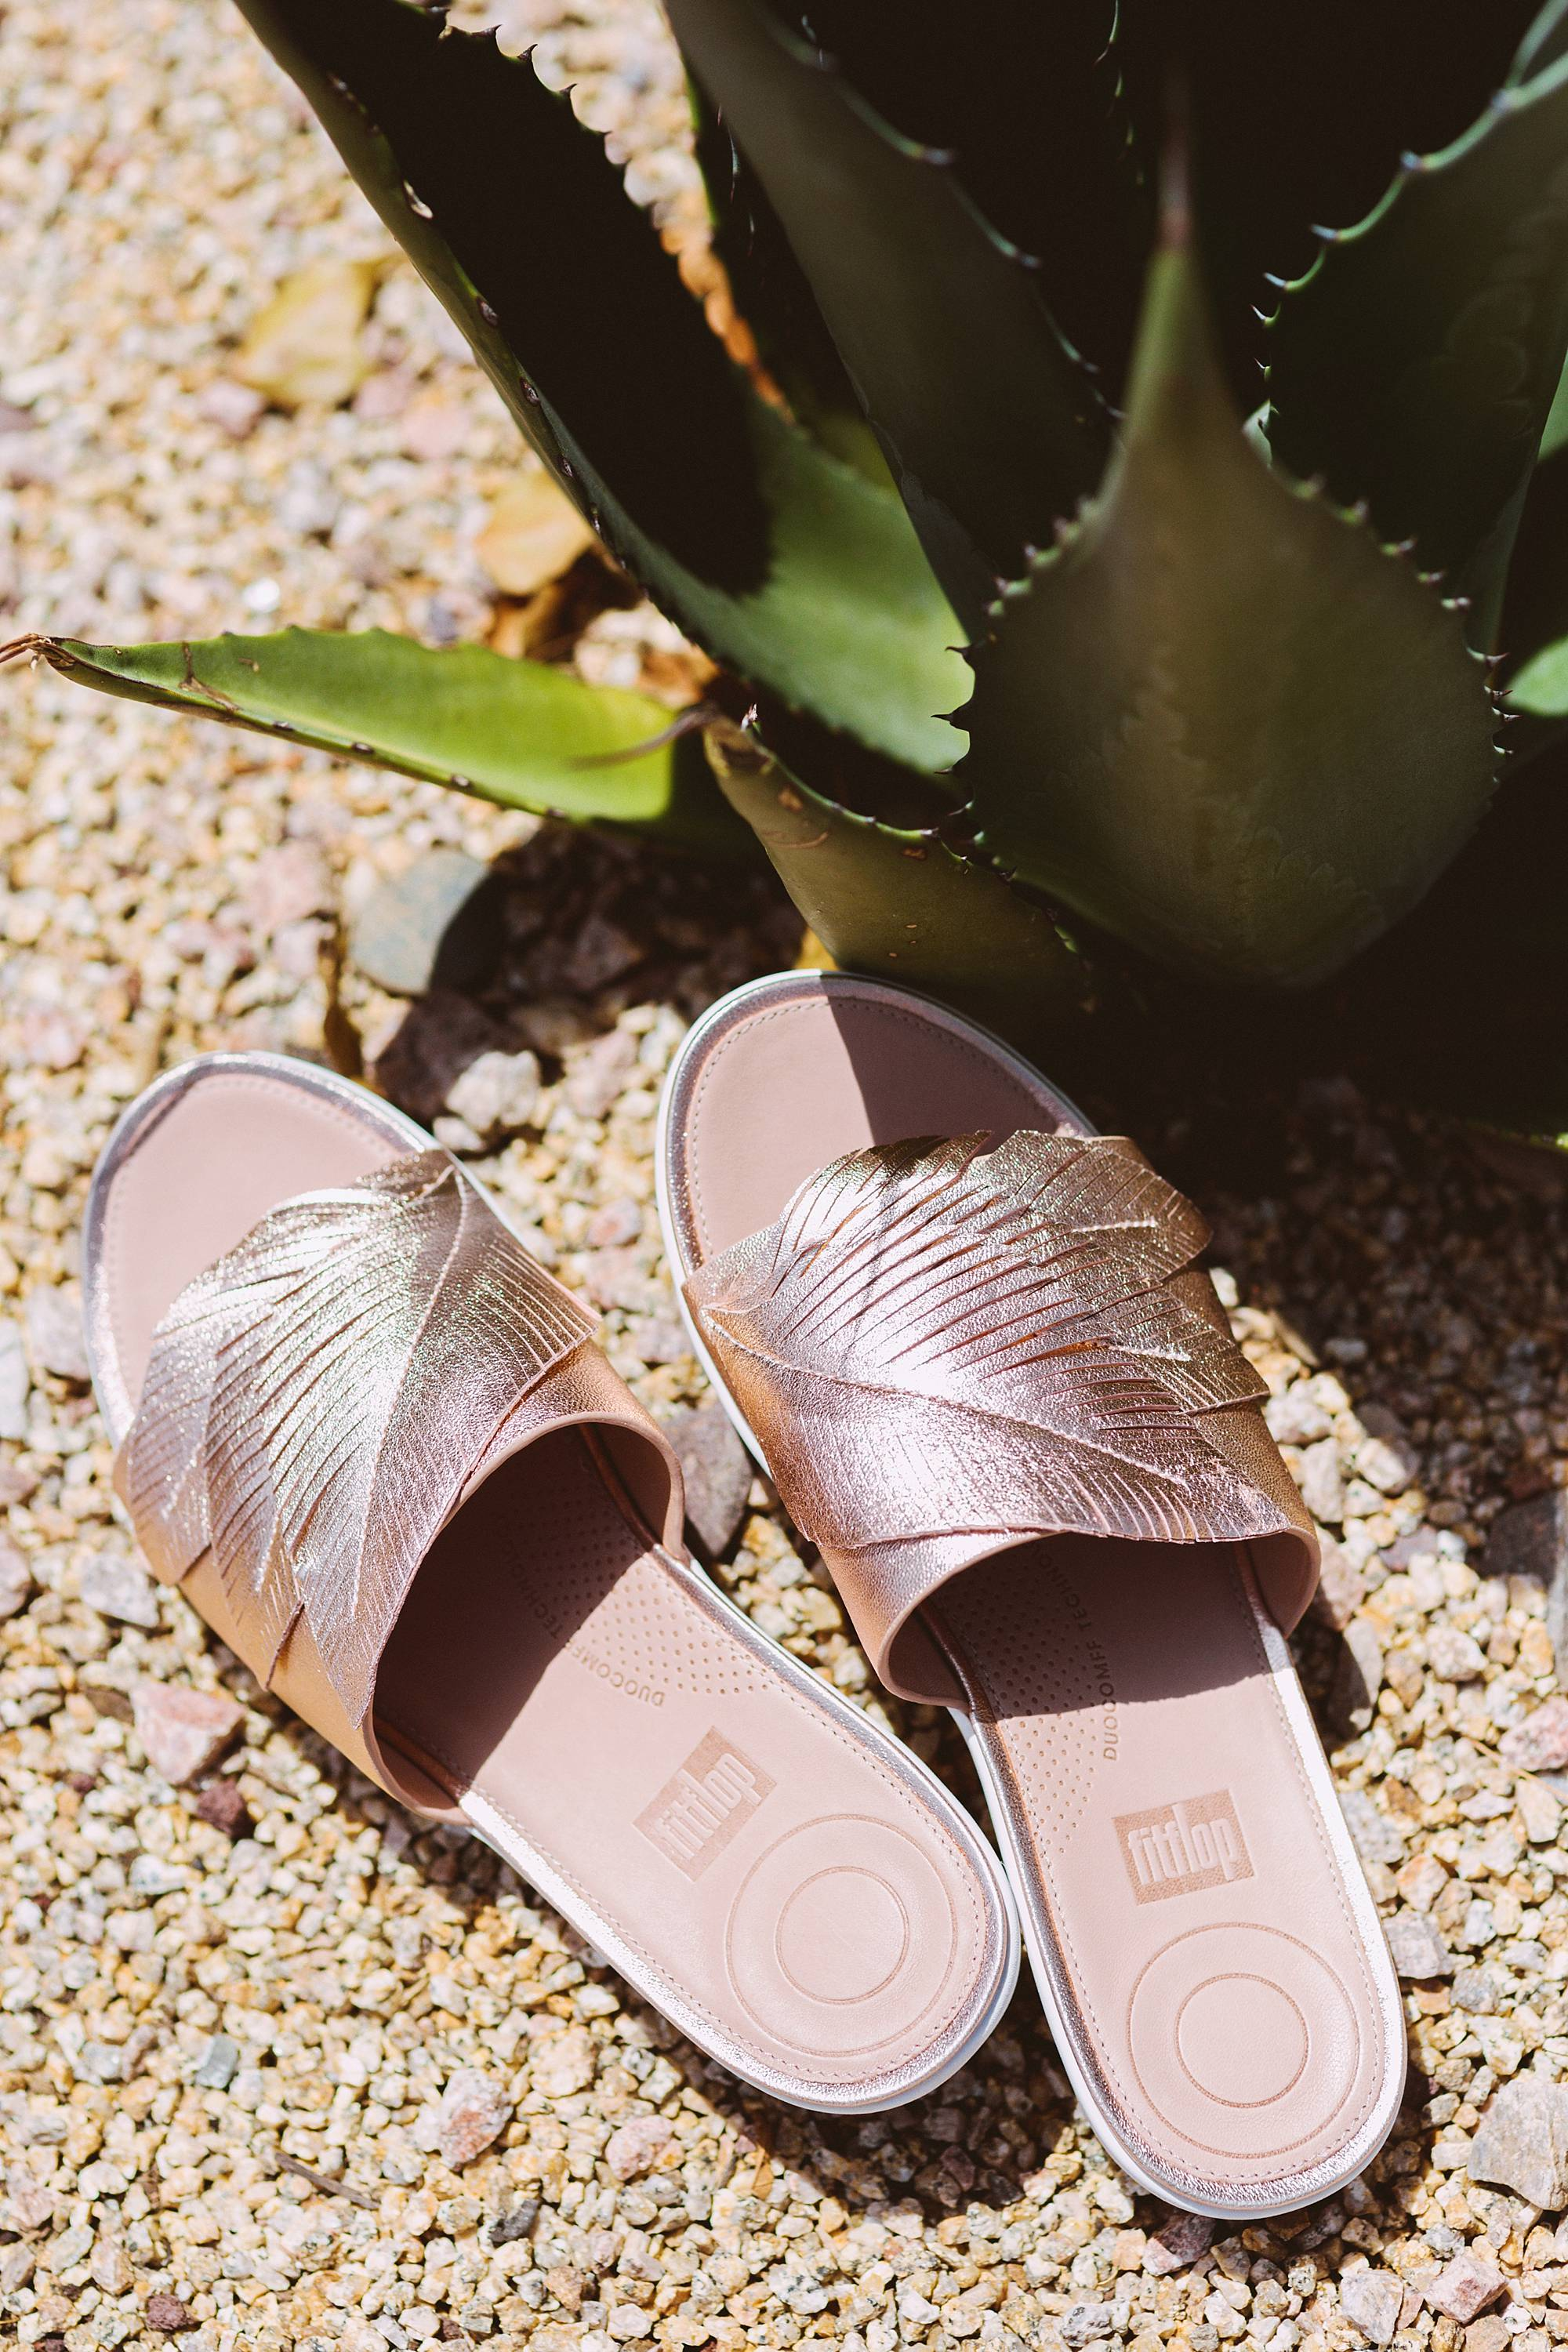 FitFlop Feather Ergonomic metallic slides in rose gold so comfortable on phoenix lifestyle blogger Diana Elizabeth